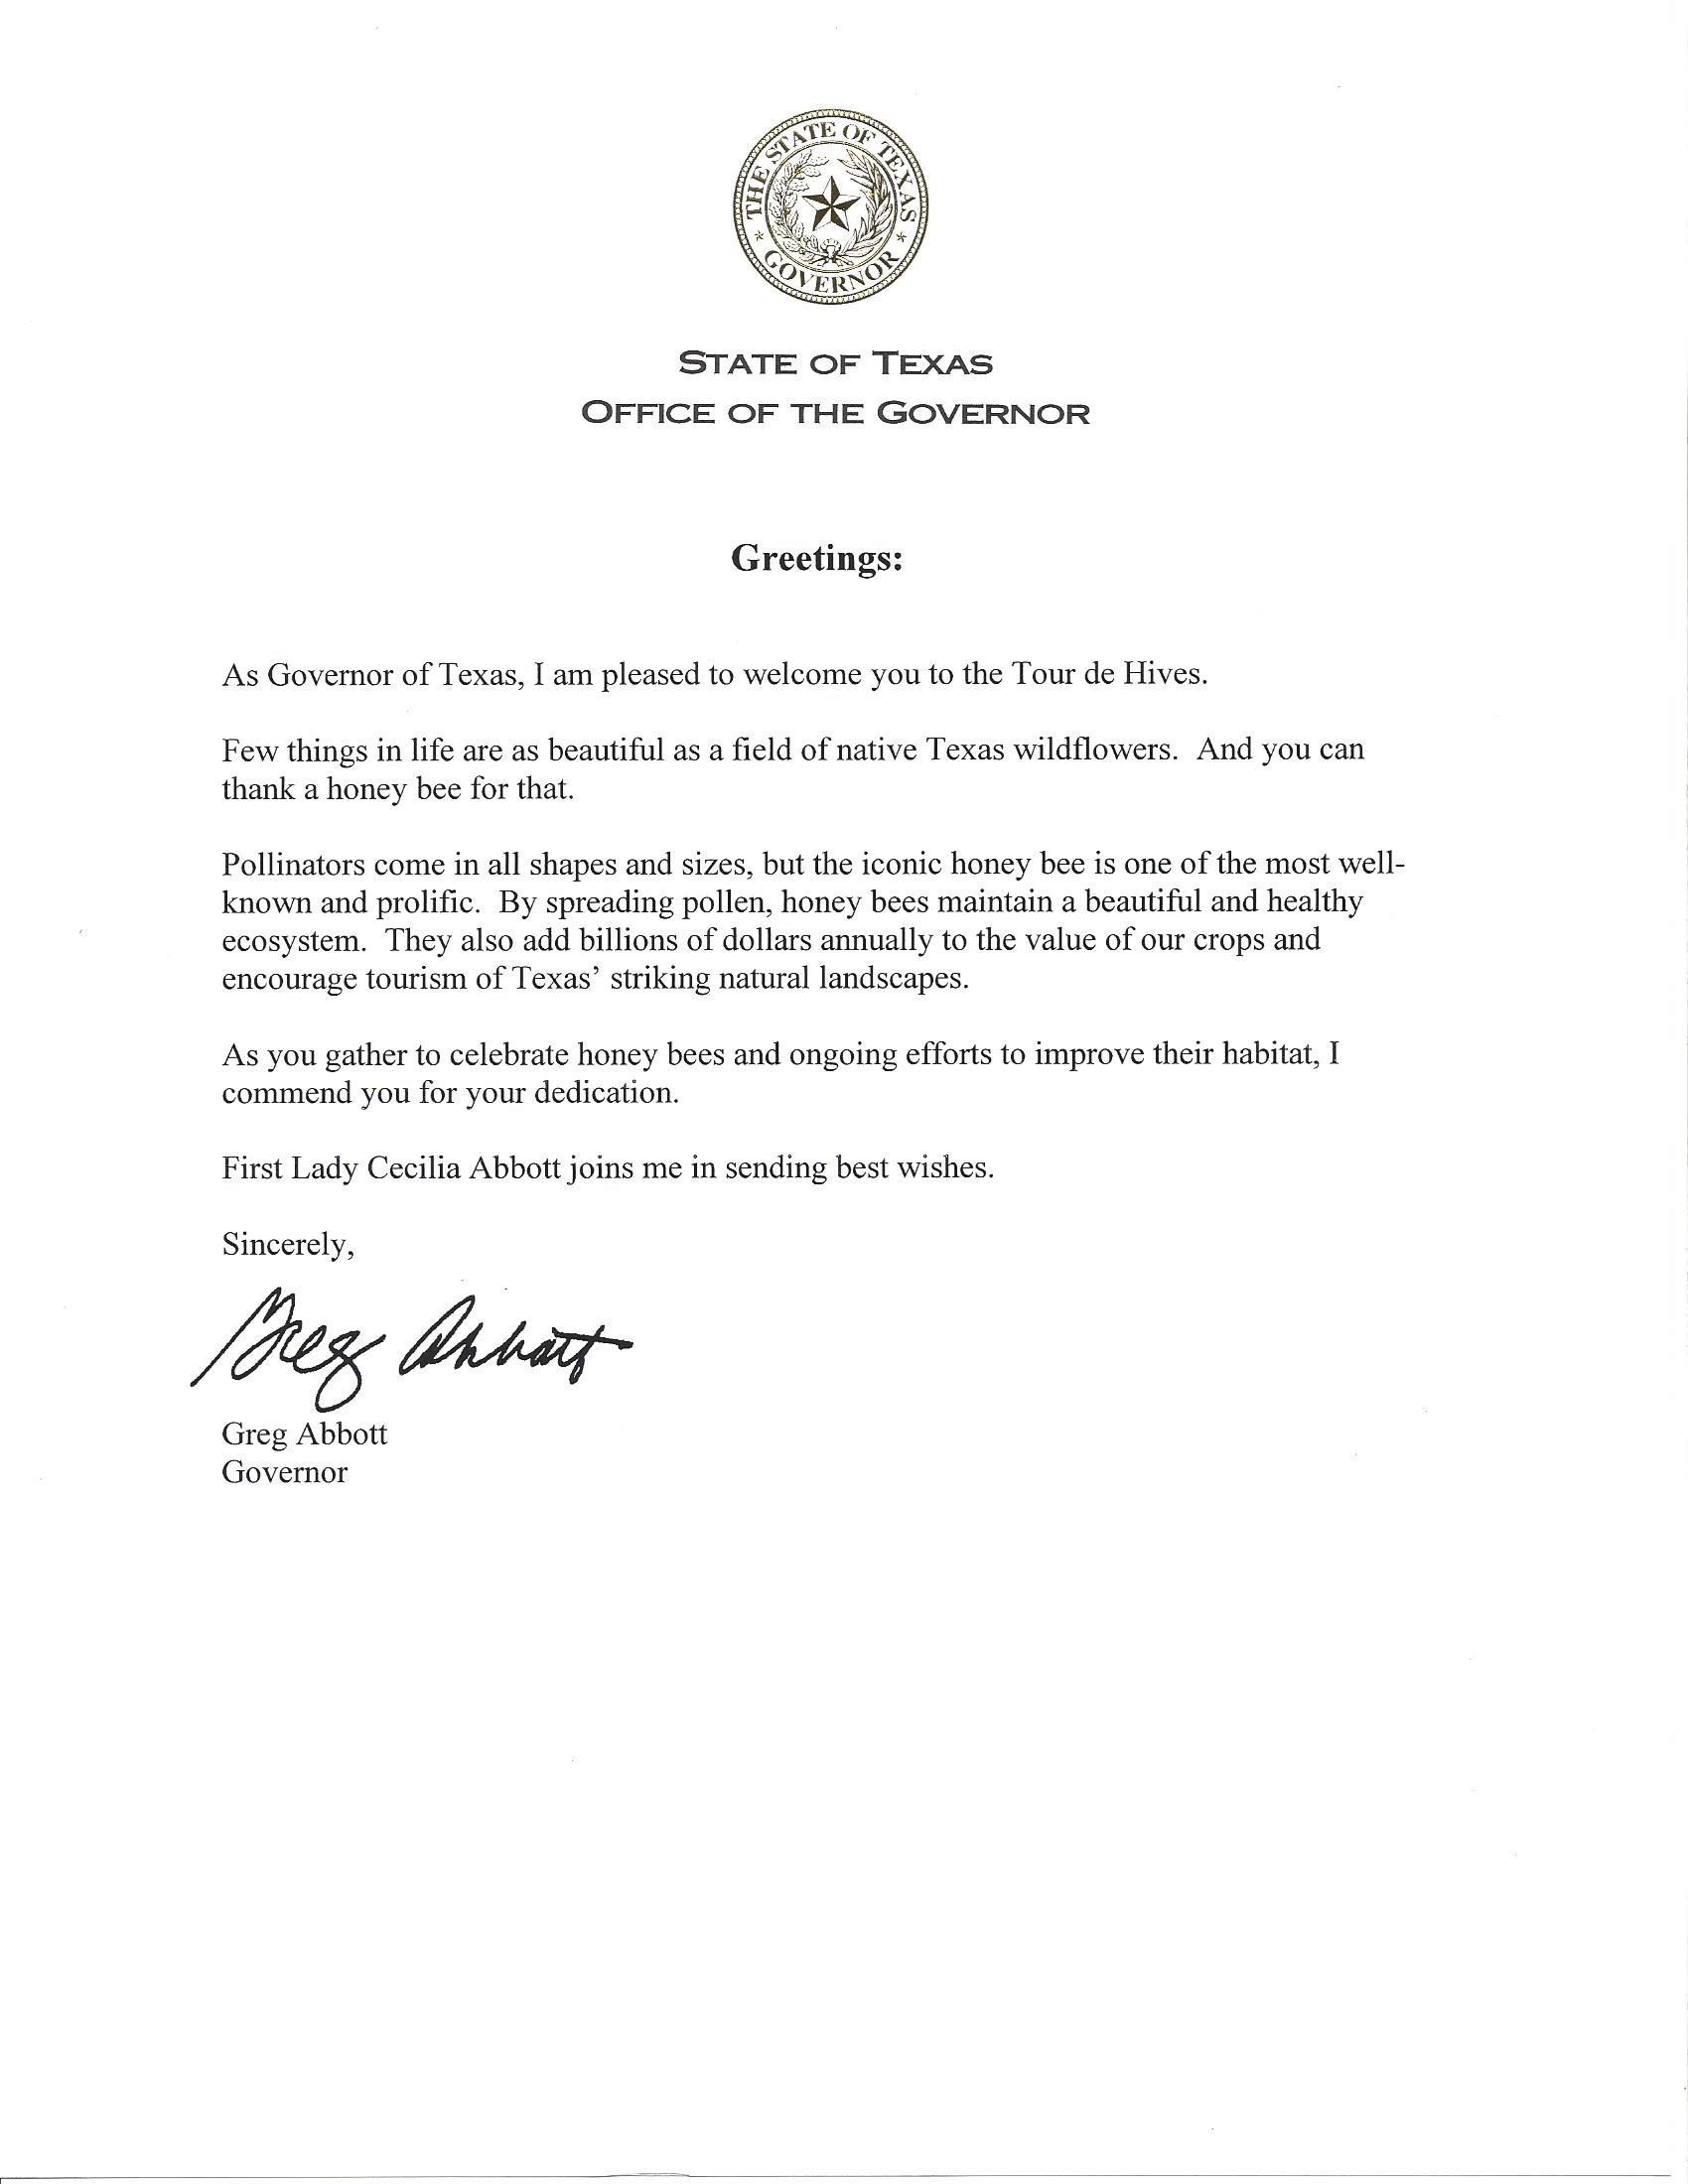 Welcome Letter From Governor Abbott For Tour De Hives